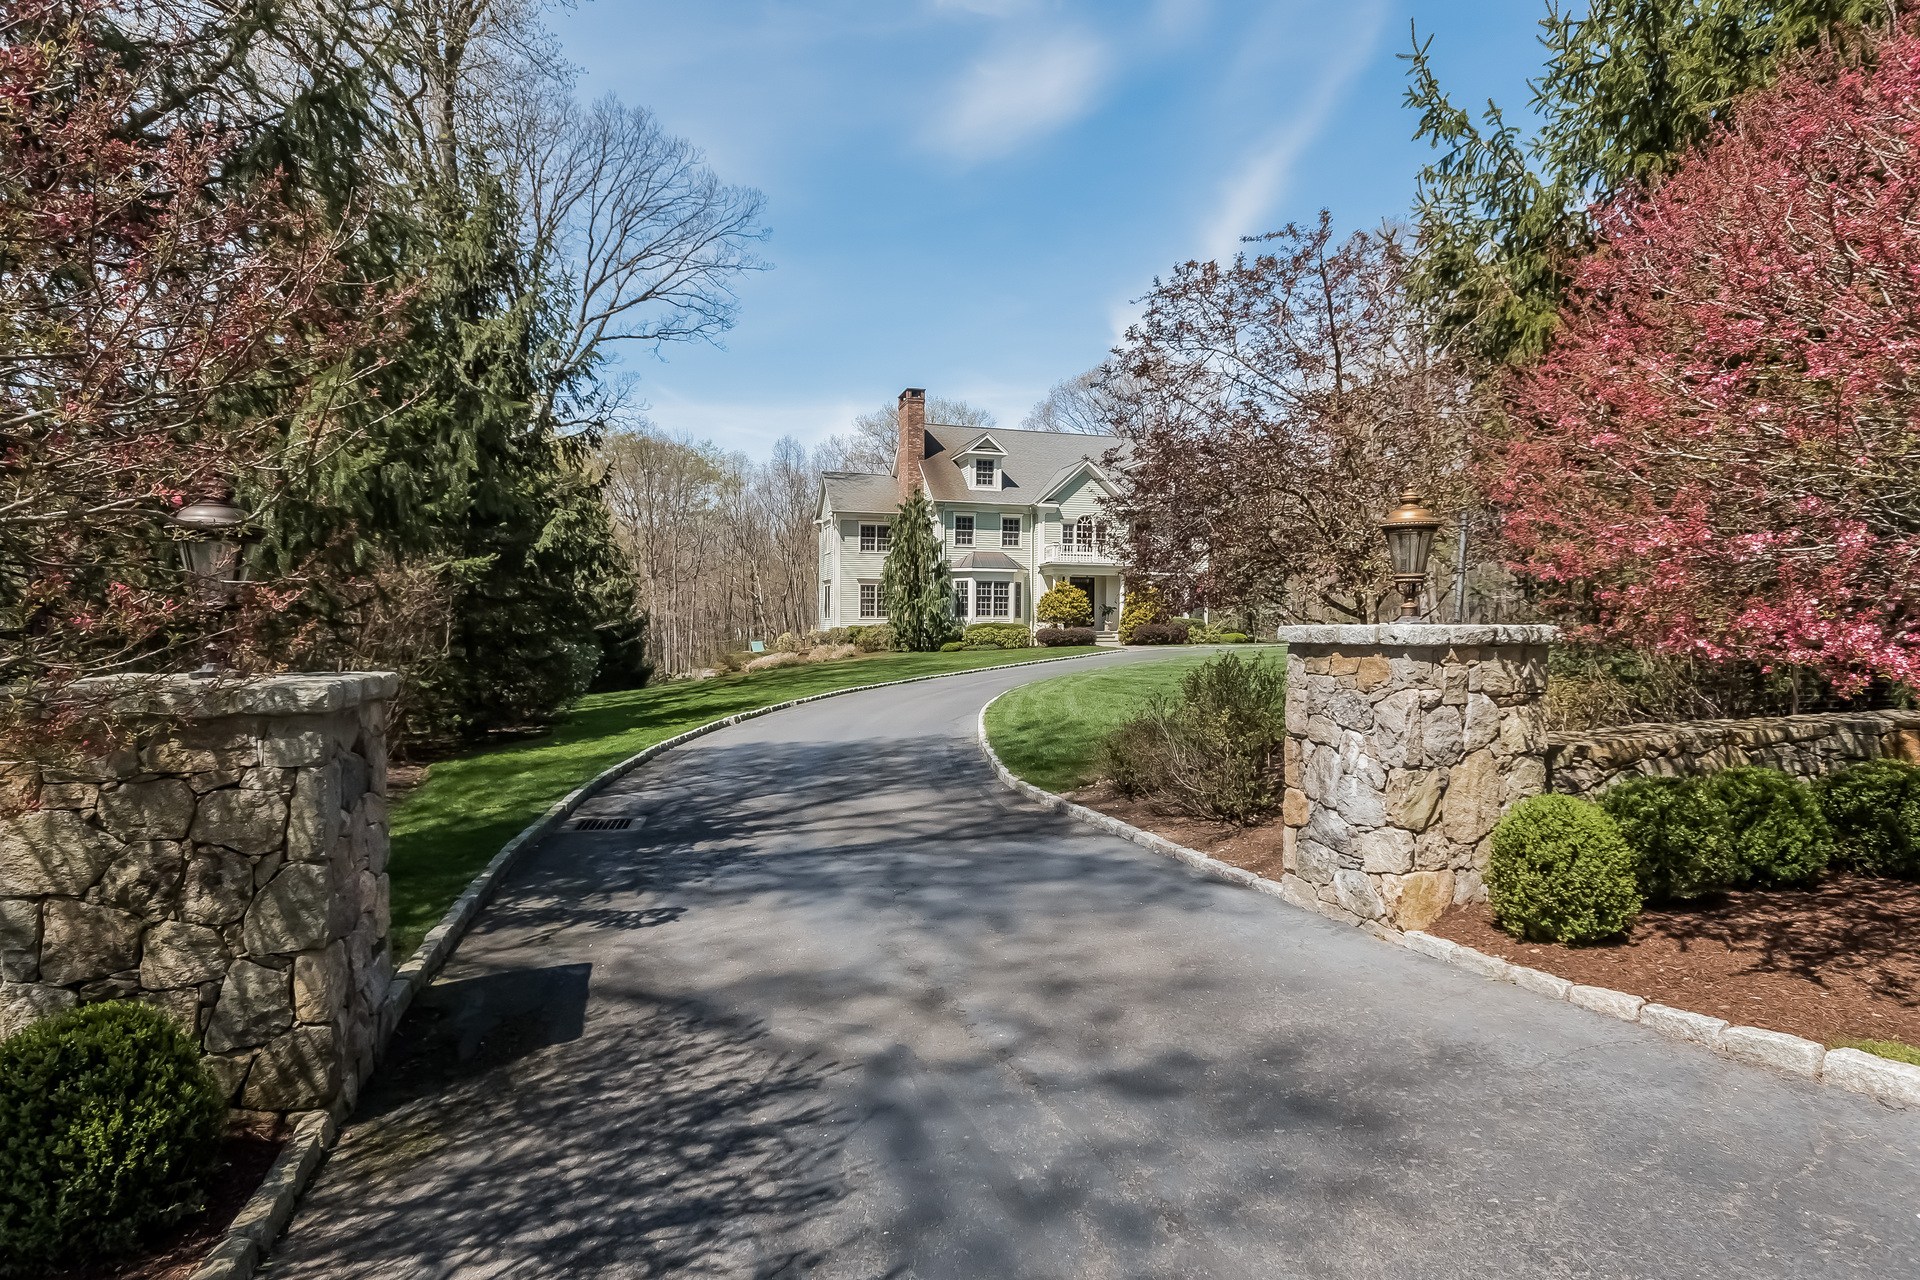 Single Family Home for Sale at Exudes Sophistication 149 Linden Tree Road Wilton, Connecticut, 06897 United States